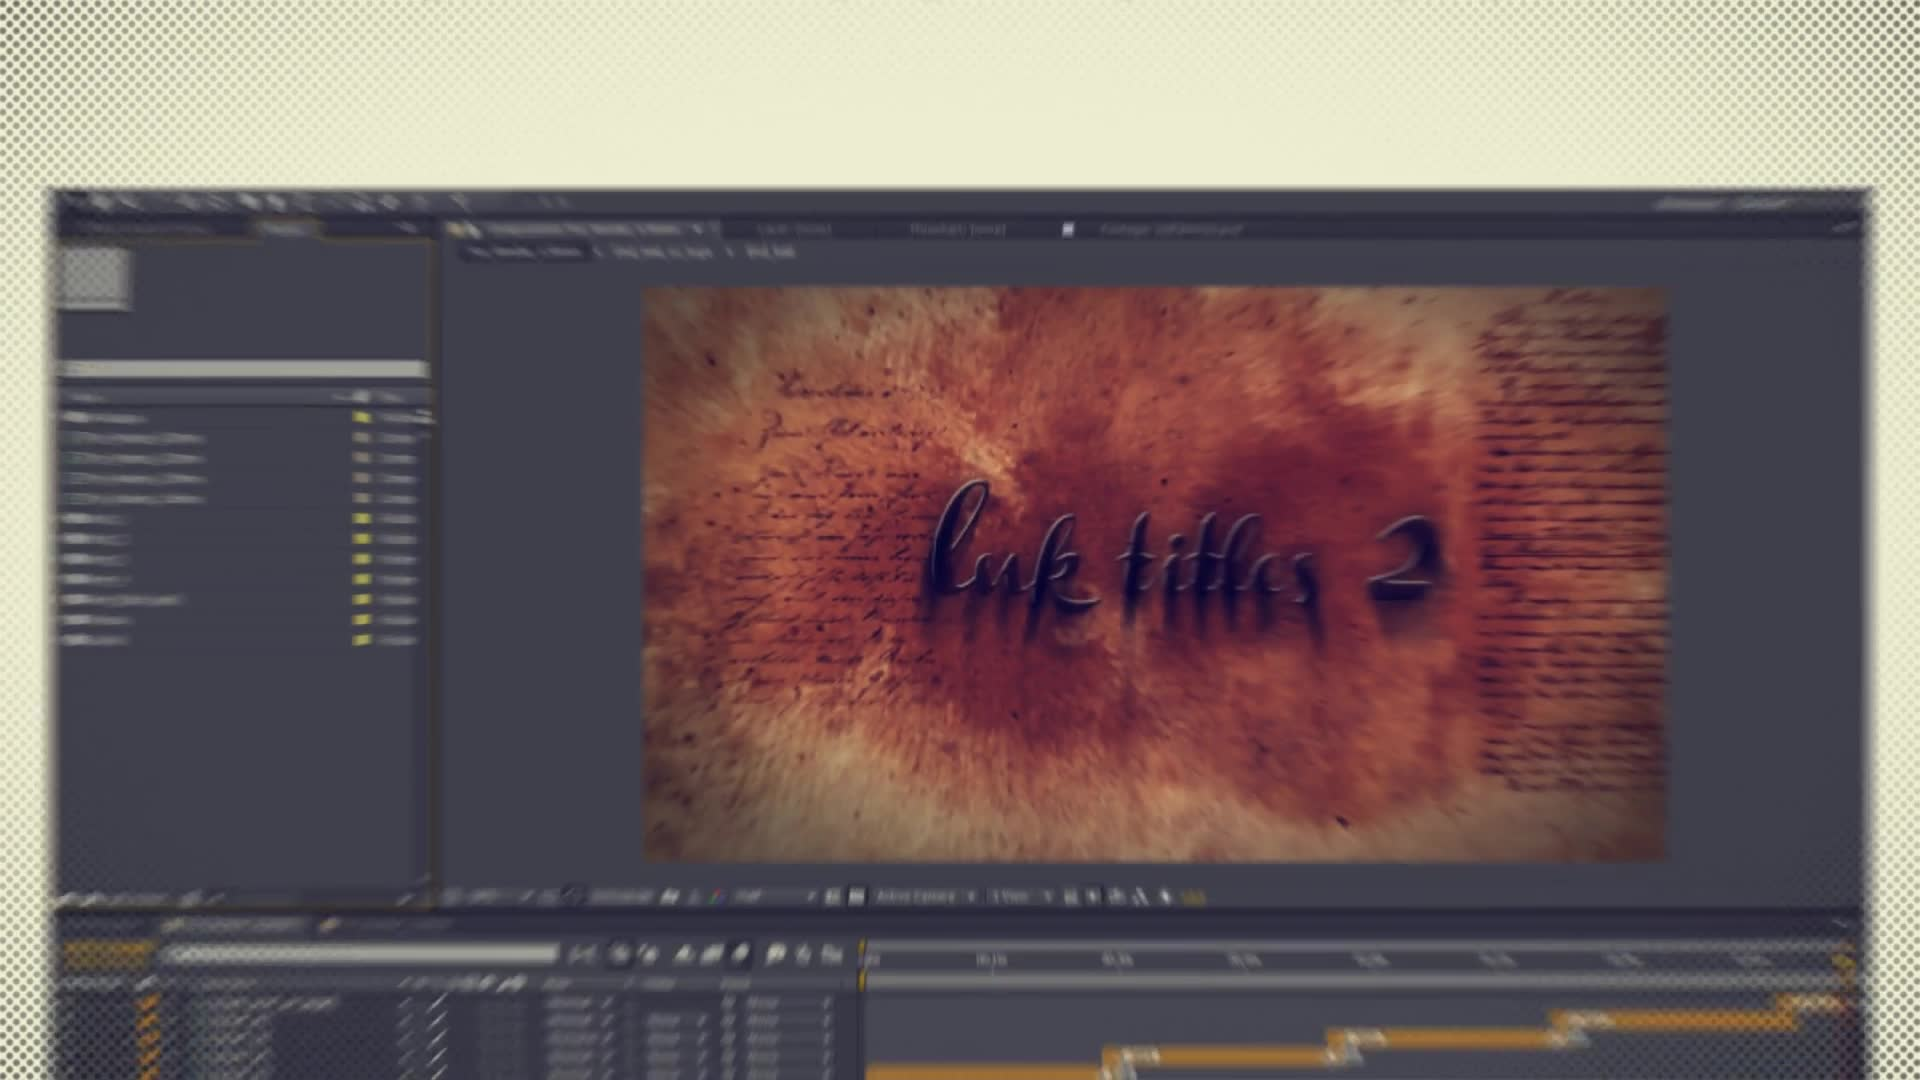 Ink Titles 2 - Download Videohive 7569279